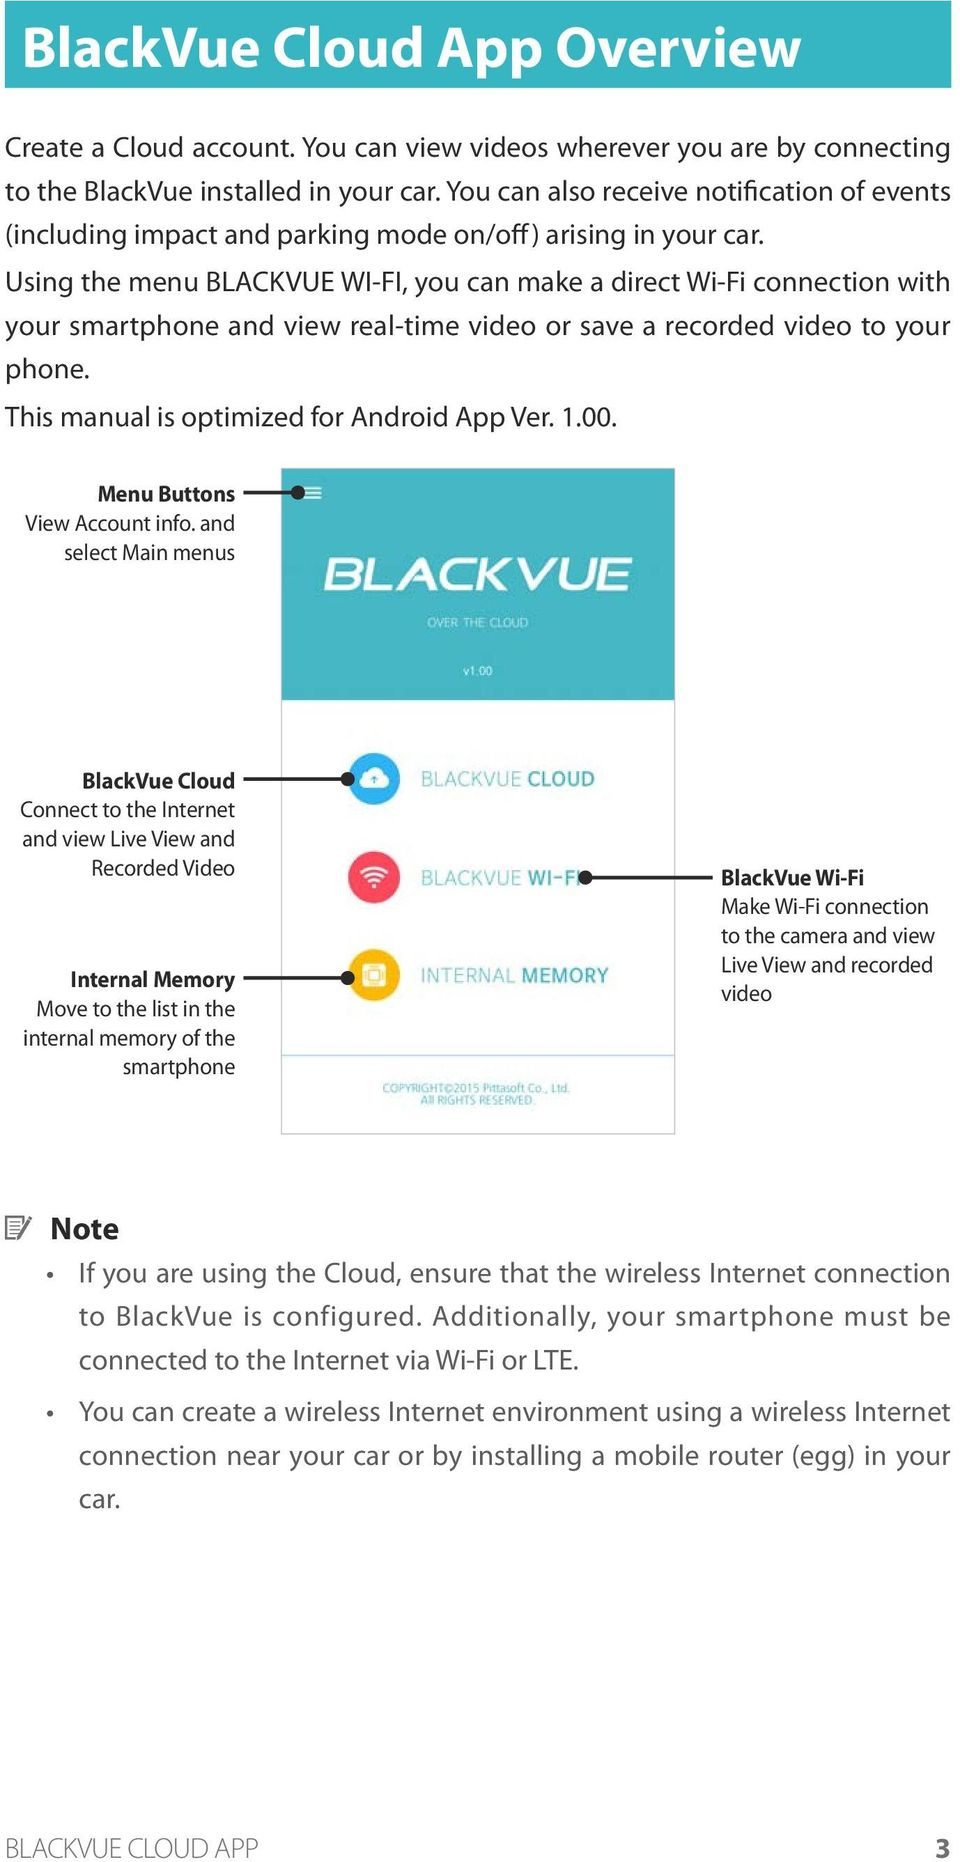 Using the menu BLACKVUE WI-FI, you can make a direct Wi-Fi connection with your smartphone and view real-time video or save a recorded video to your phone.